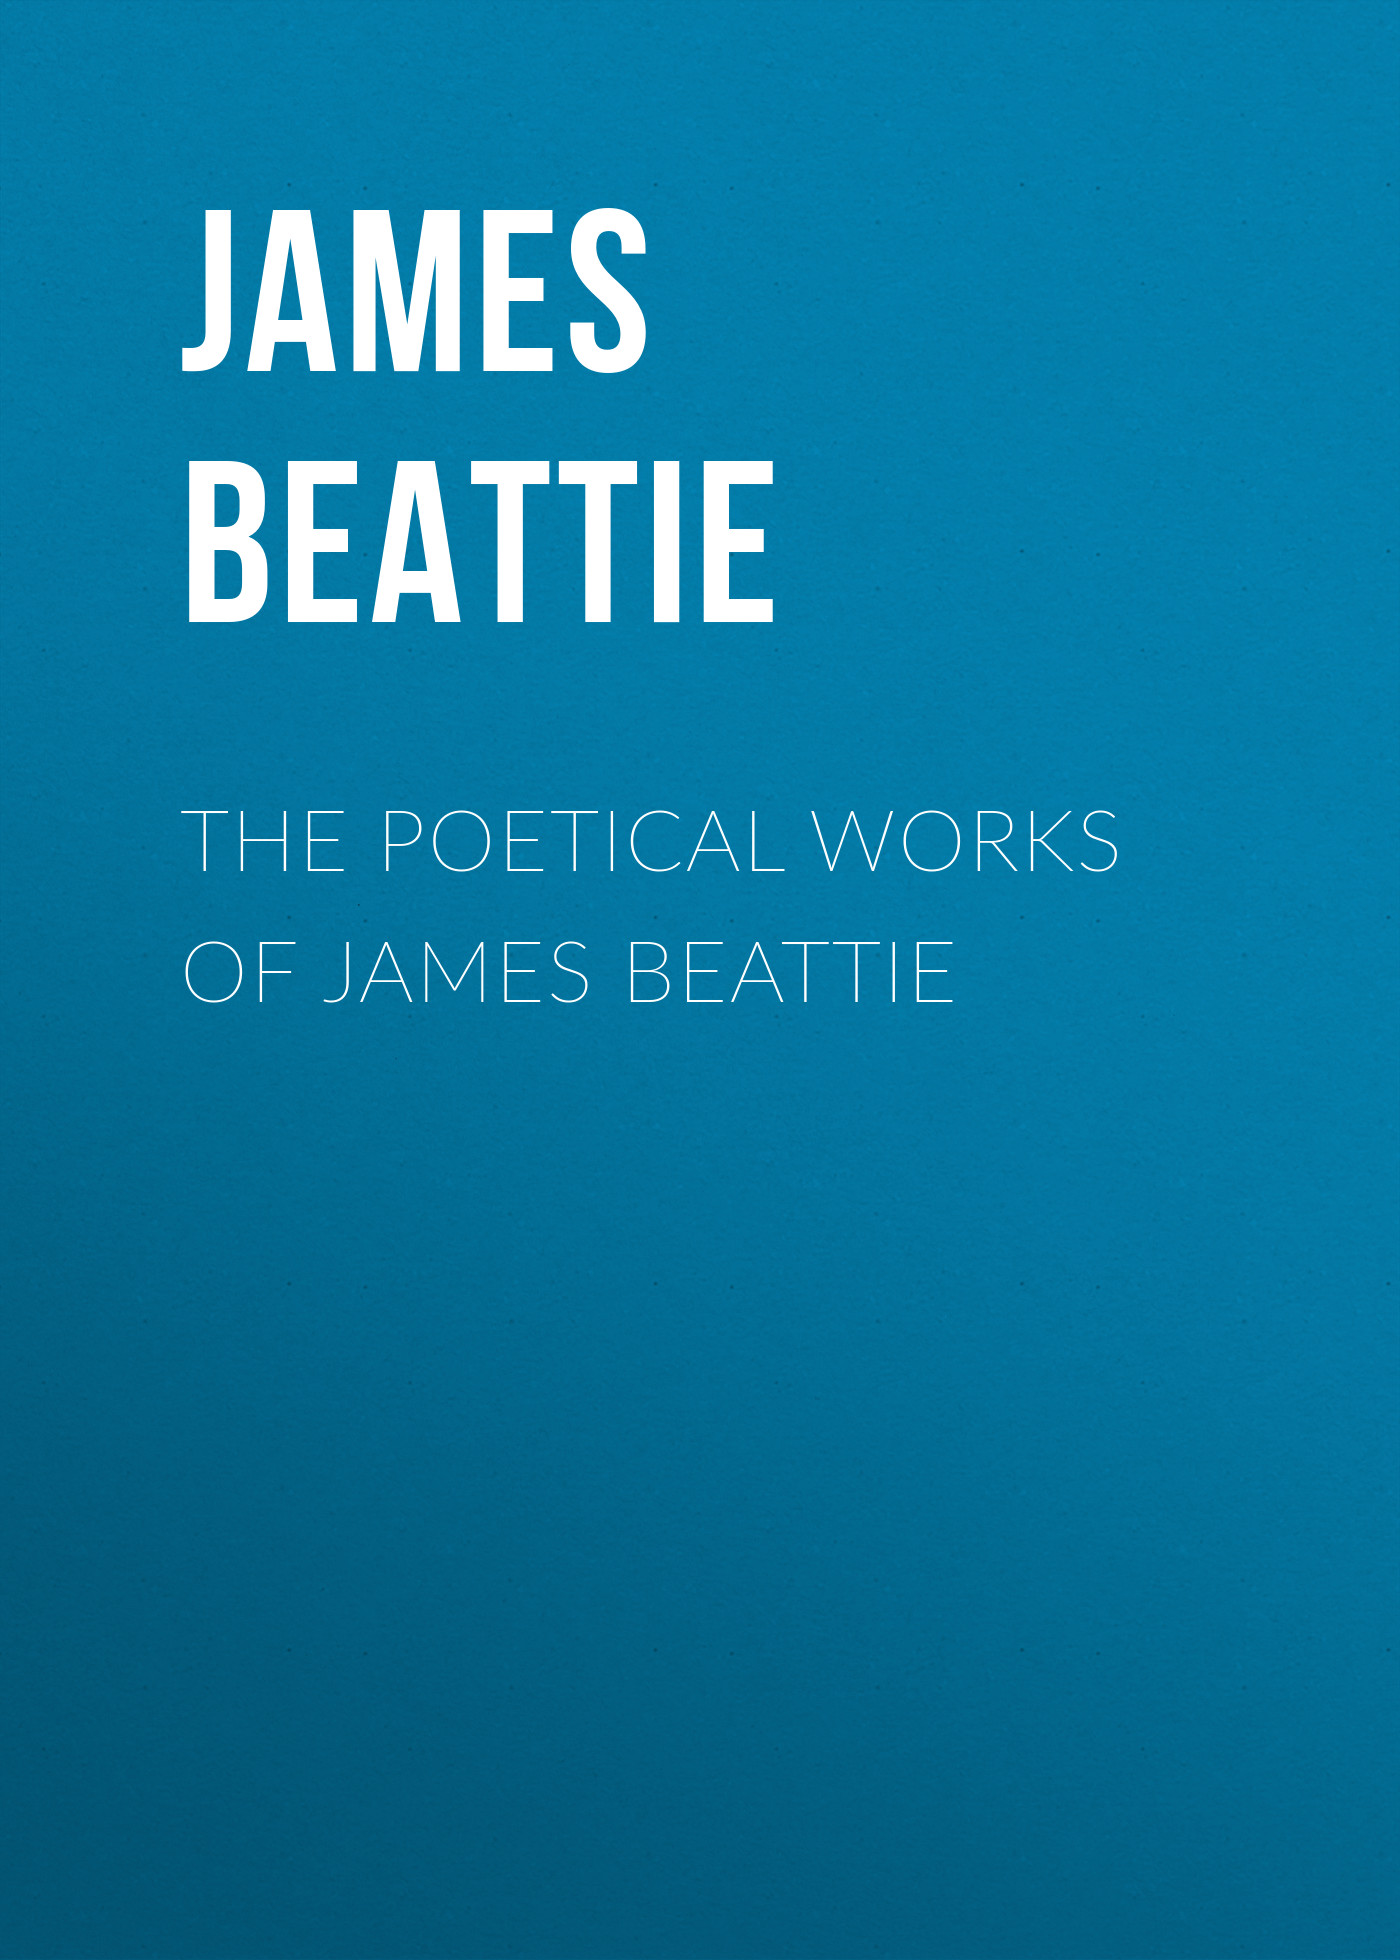 James Beattie The Poetical Works of James Beattie james beattie the poetical works of james beattie